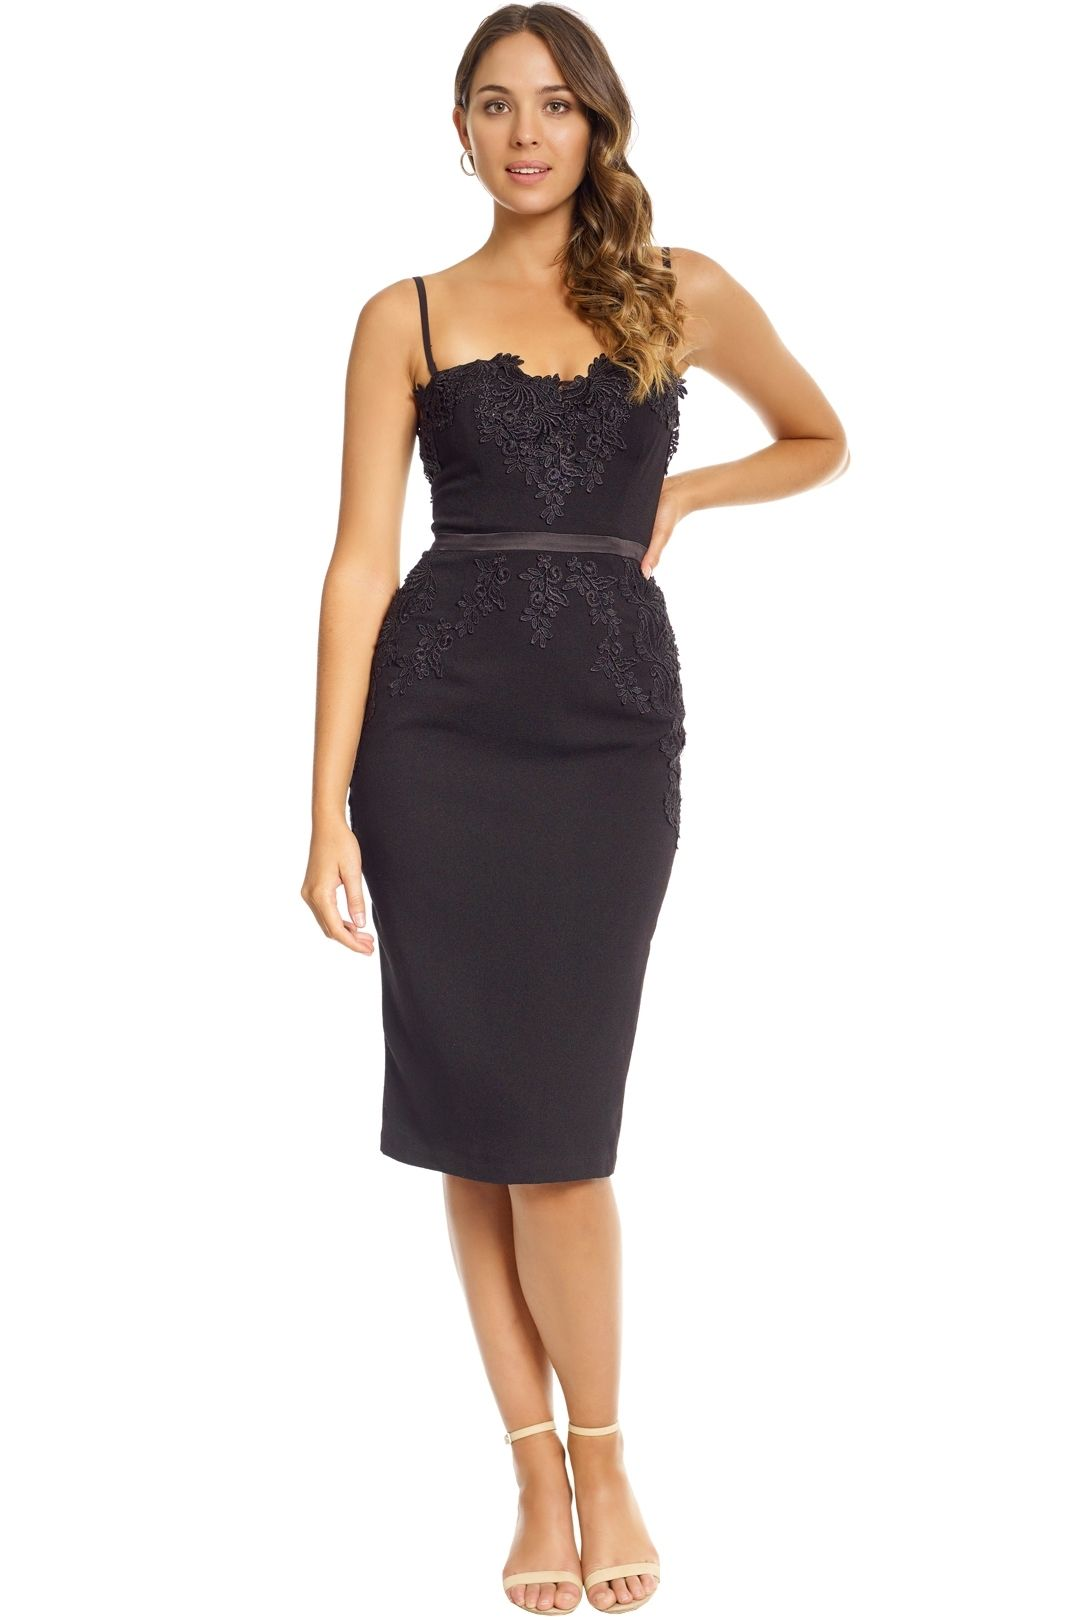 Elle Zeitoune - Black Madeline Dress - Black - Front